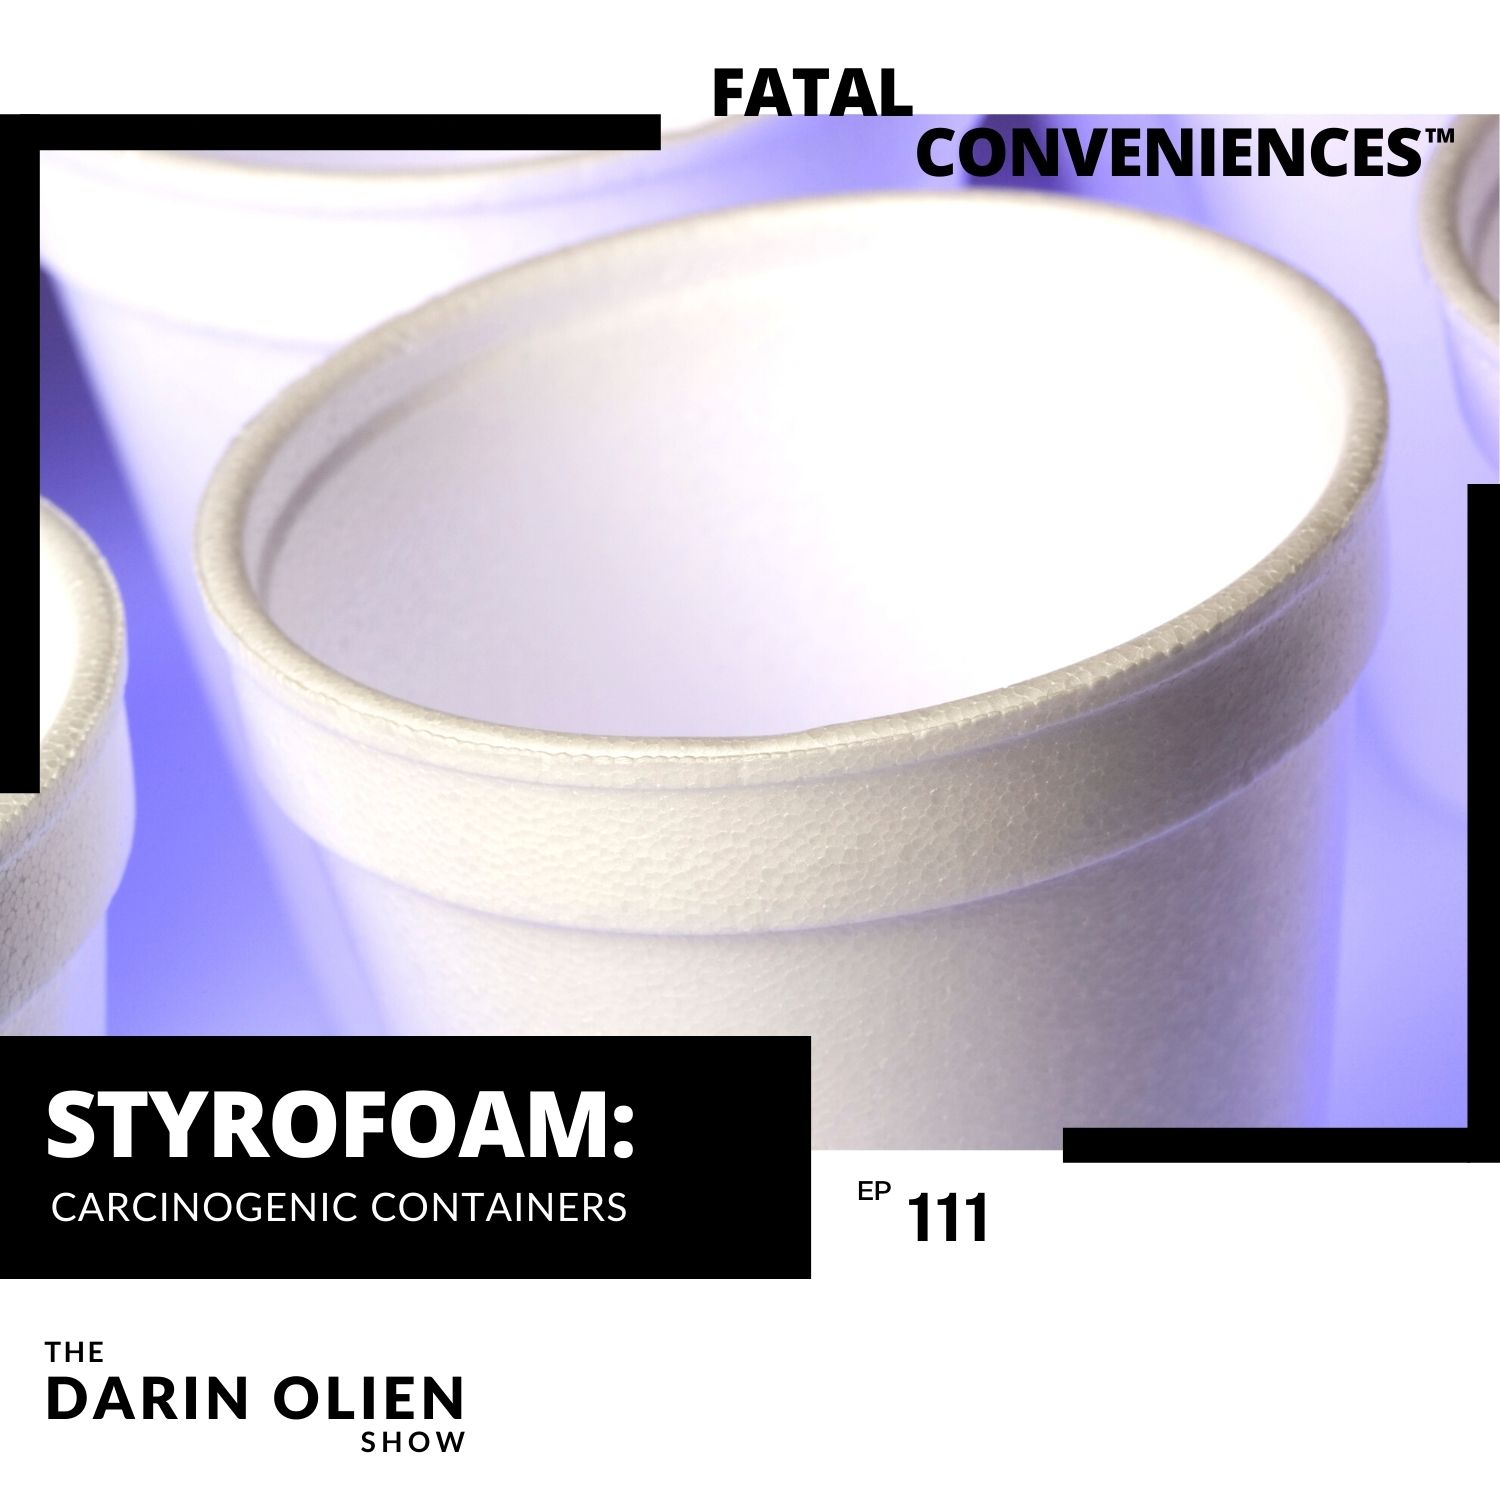 #111 Fatal Conveniences™: Styrofoam: Carcinogenic Containers